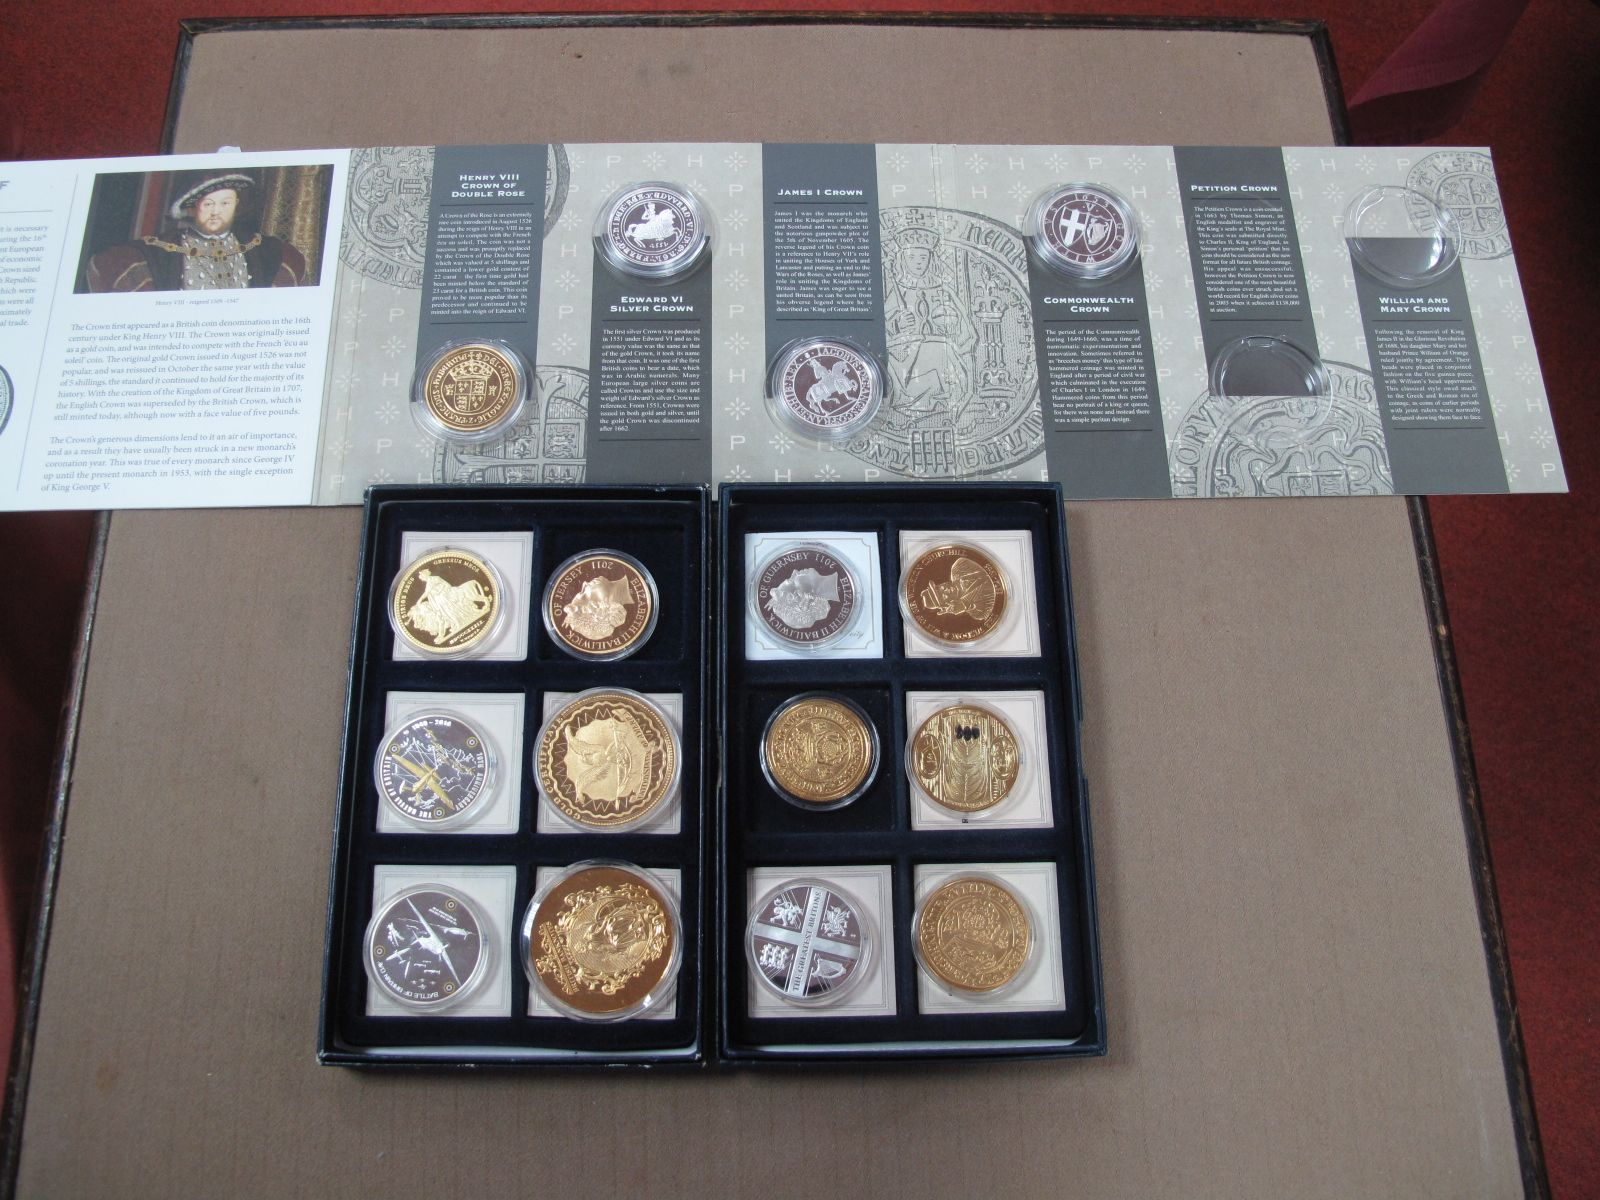 A Collection of Commemorative Coins,including 40th Anniversary of Decimalisation, Battle of